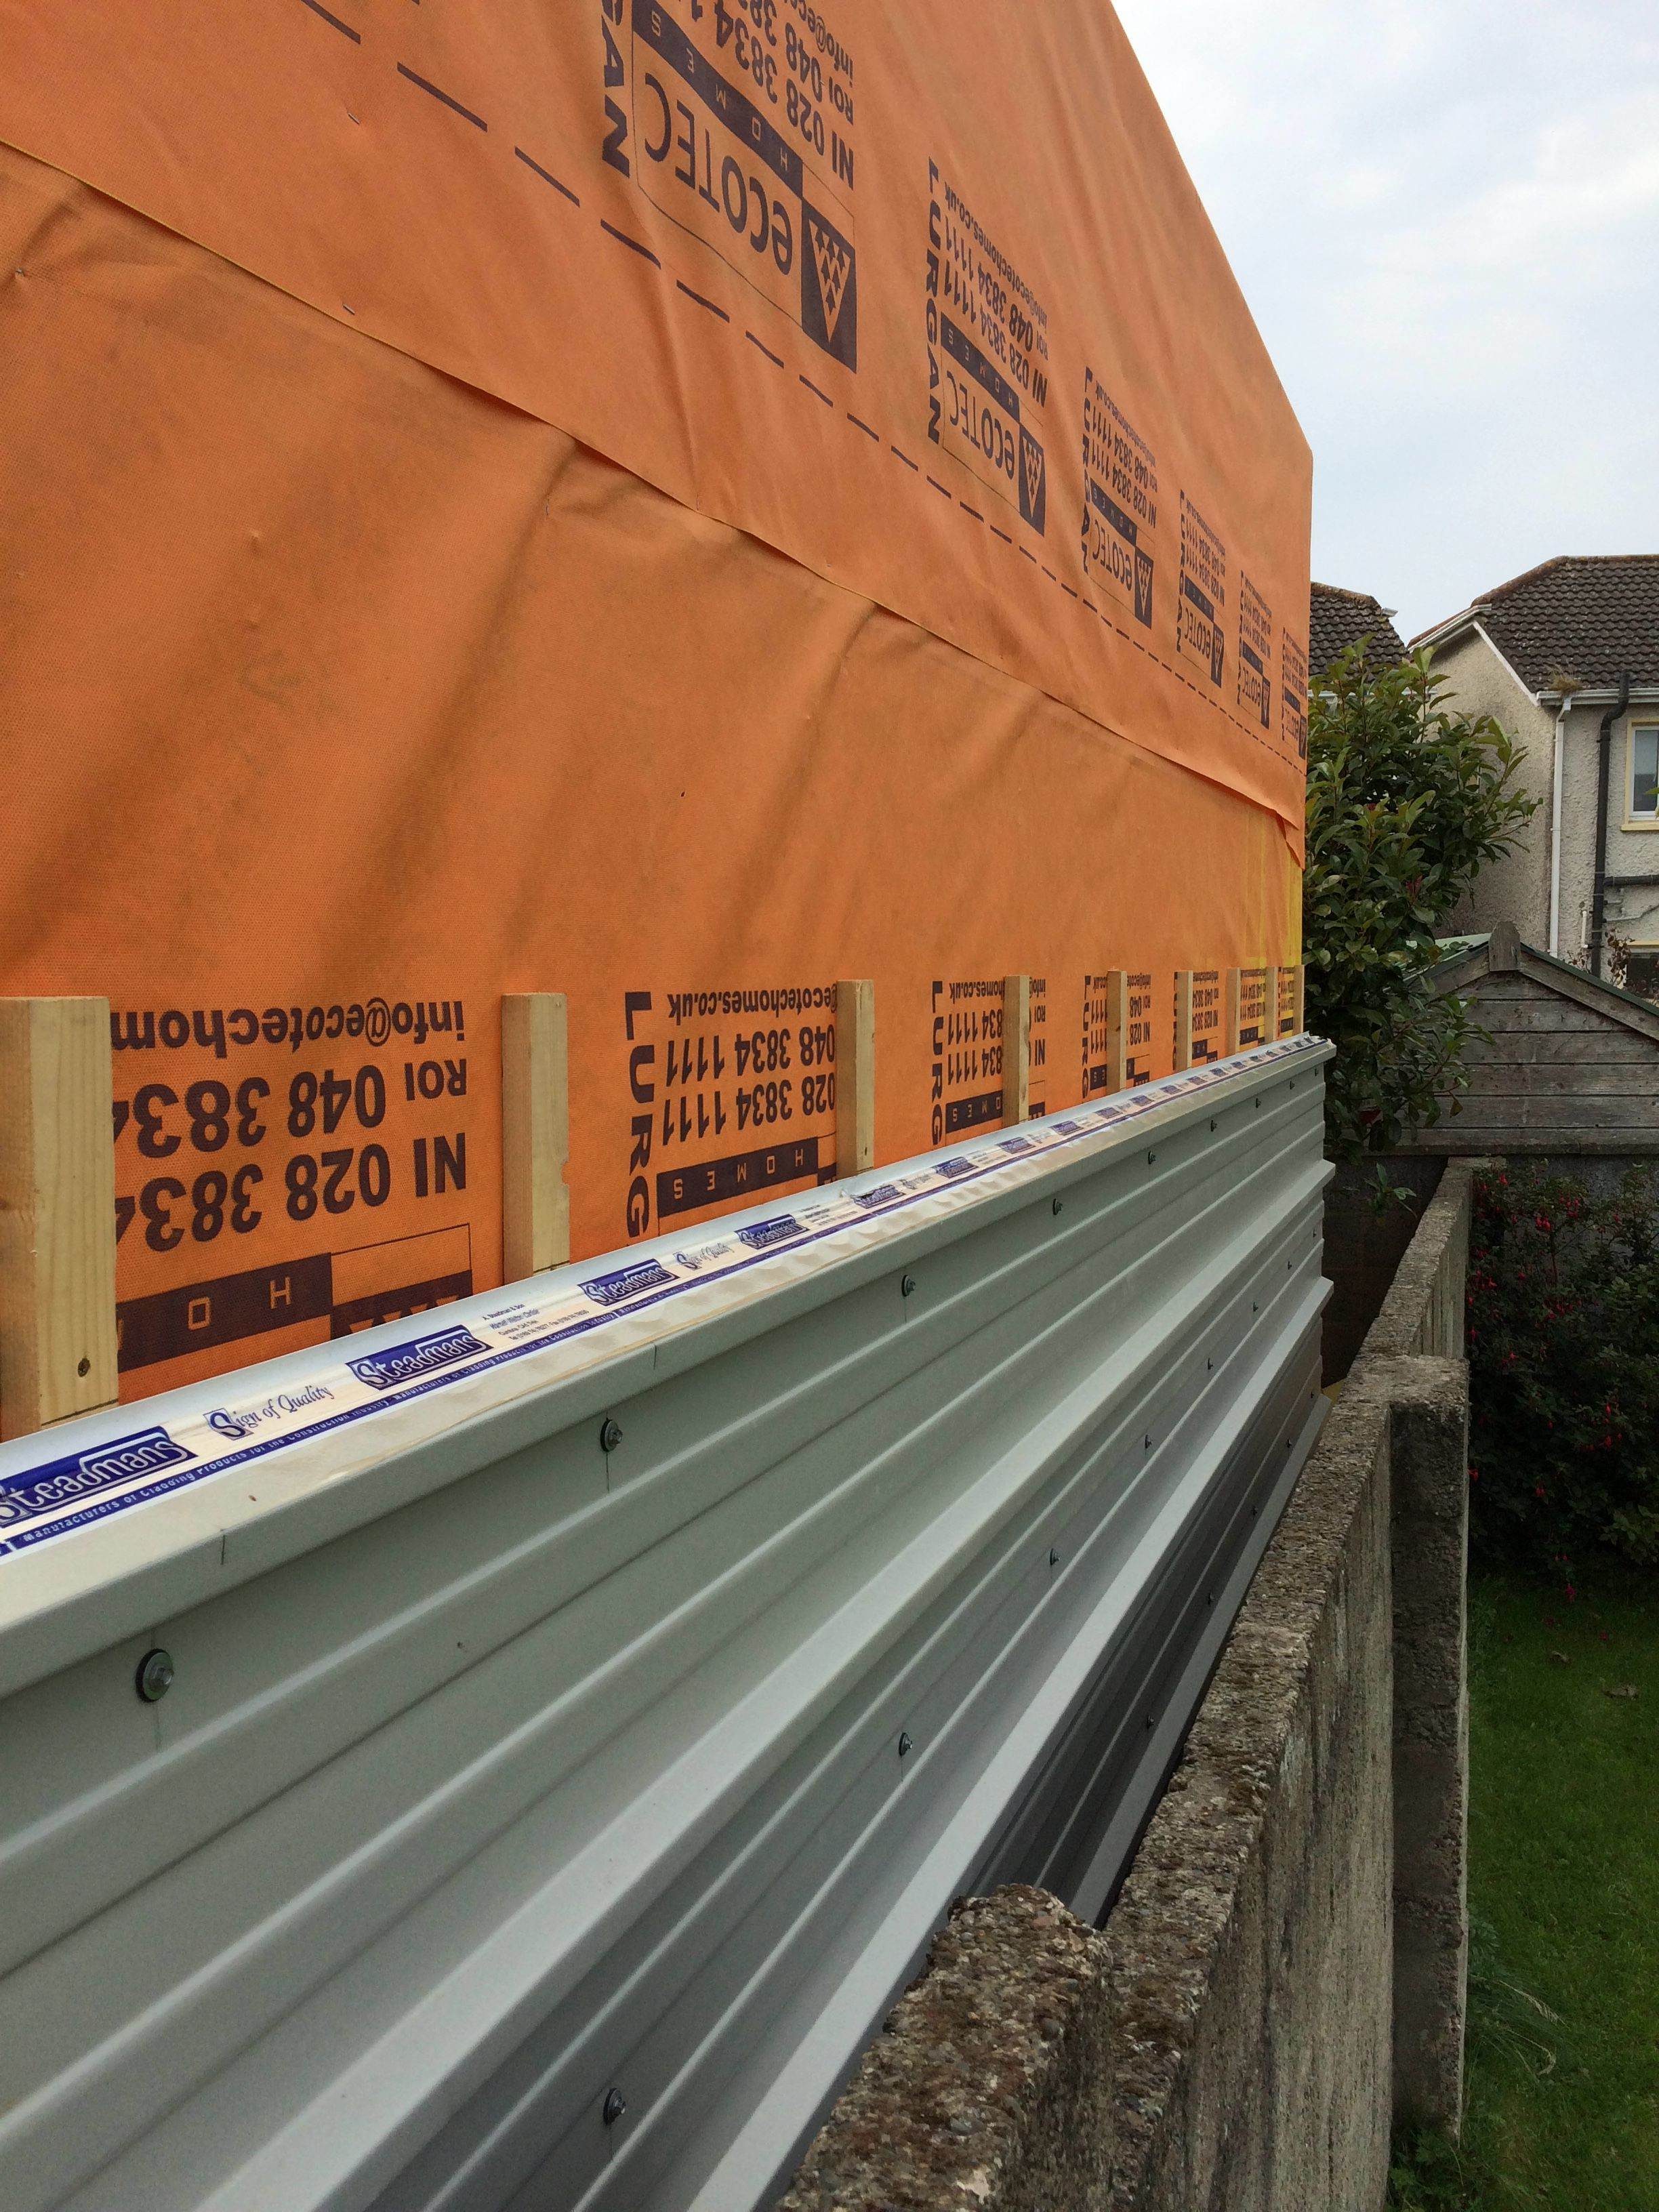 Insulated Panel Cladding With Pvc Coating For Rear Wall This Removes The Need For Cladding Maintenance As This Wall I Insulated Panels Boundary Walls Cladding